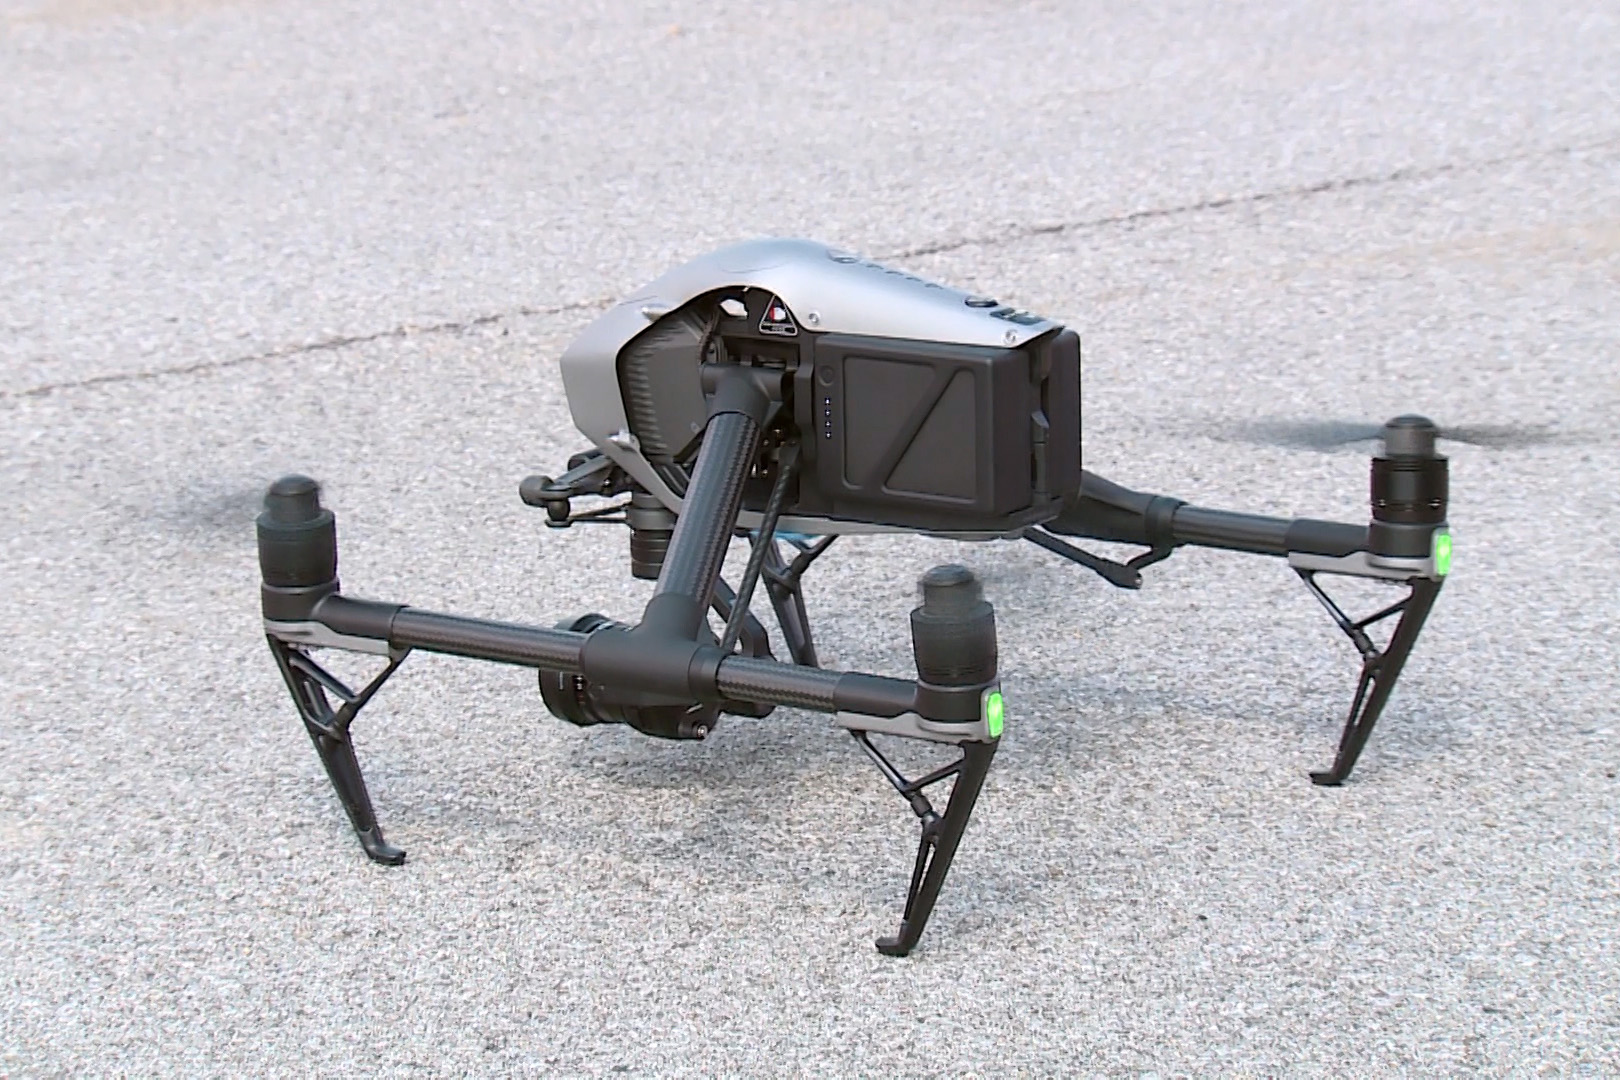 Police Drones Dramatically Shorten Wait Times At Crash Sites | 1620 x 1080 jpeg 548kB